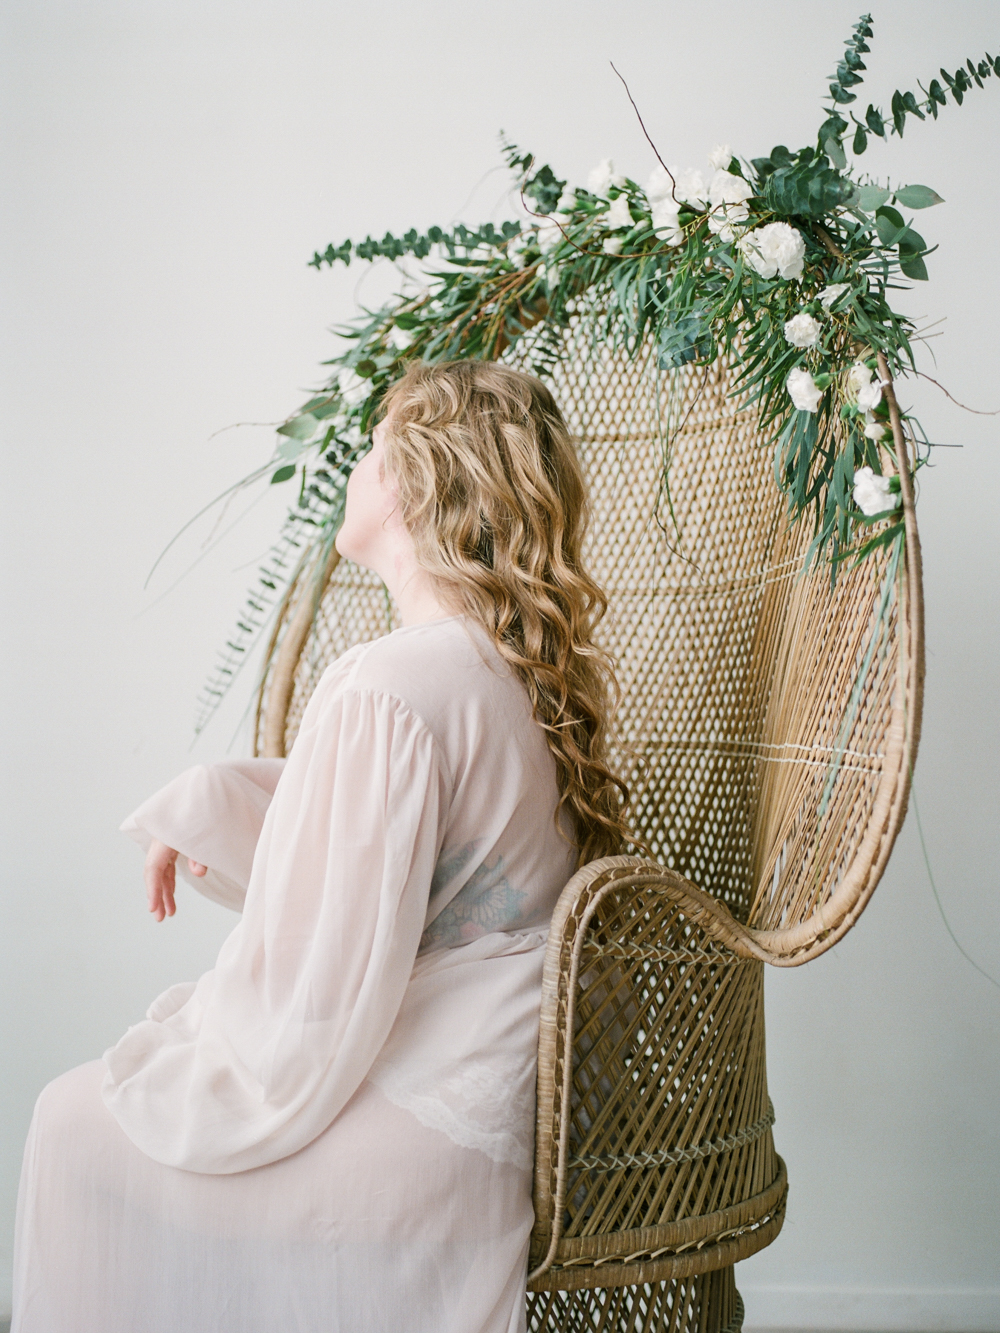 houston-boudoir-photographer-film-photographer-studio-intimate-simple-organic-boho-flowers-neutral-redhead-portraits-6.jpg